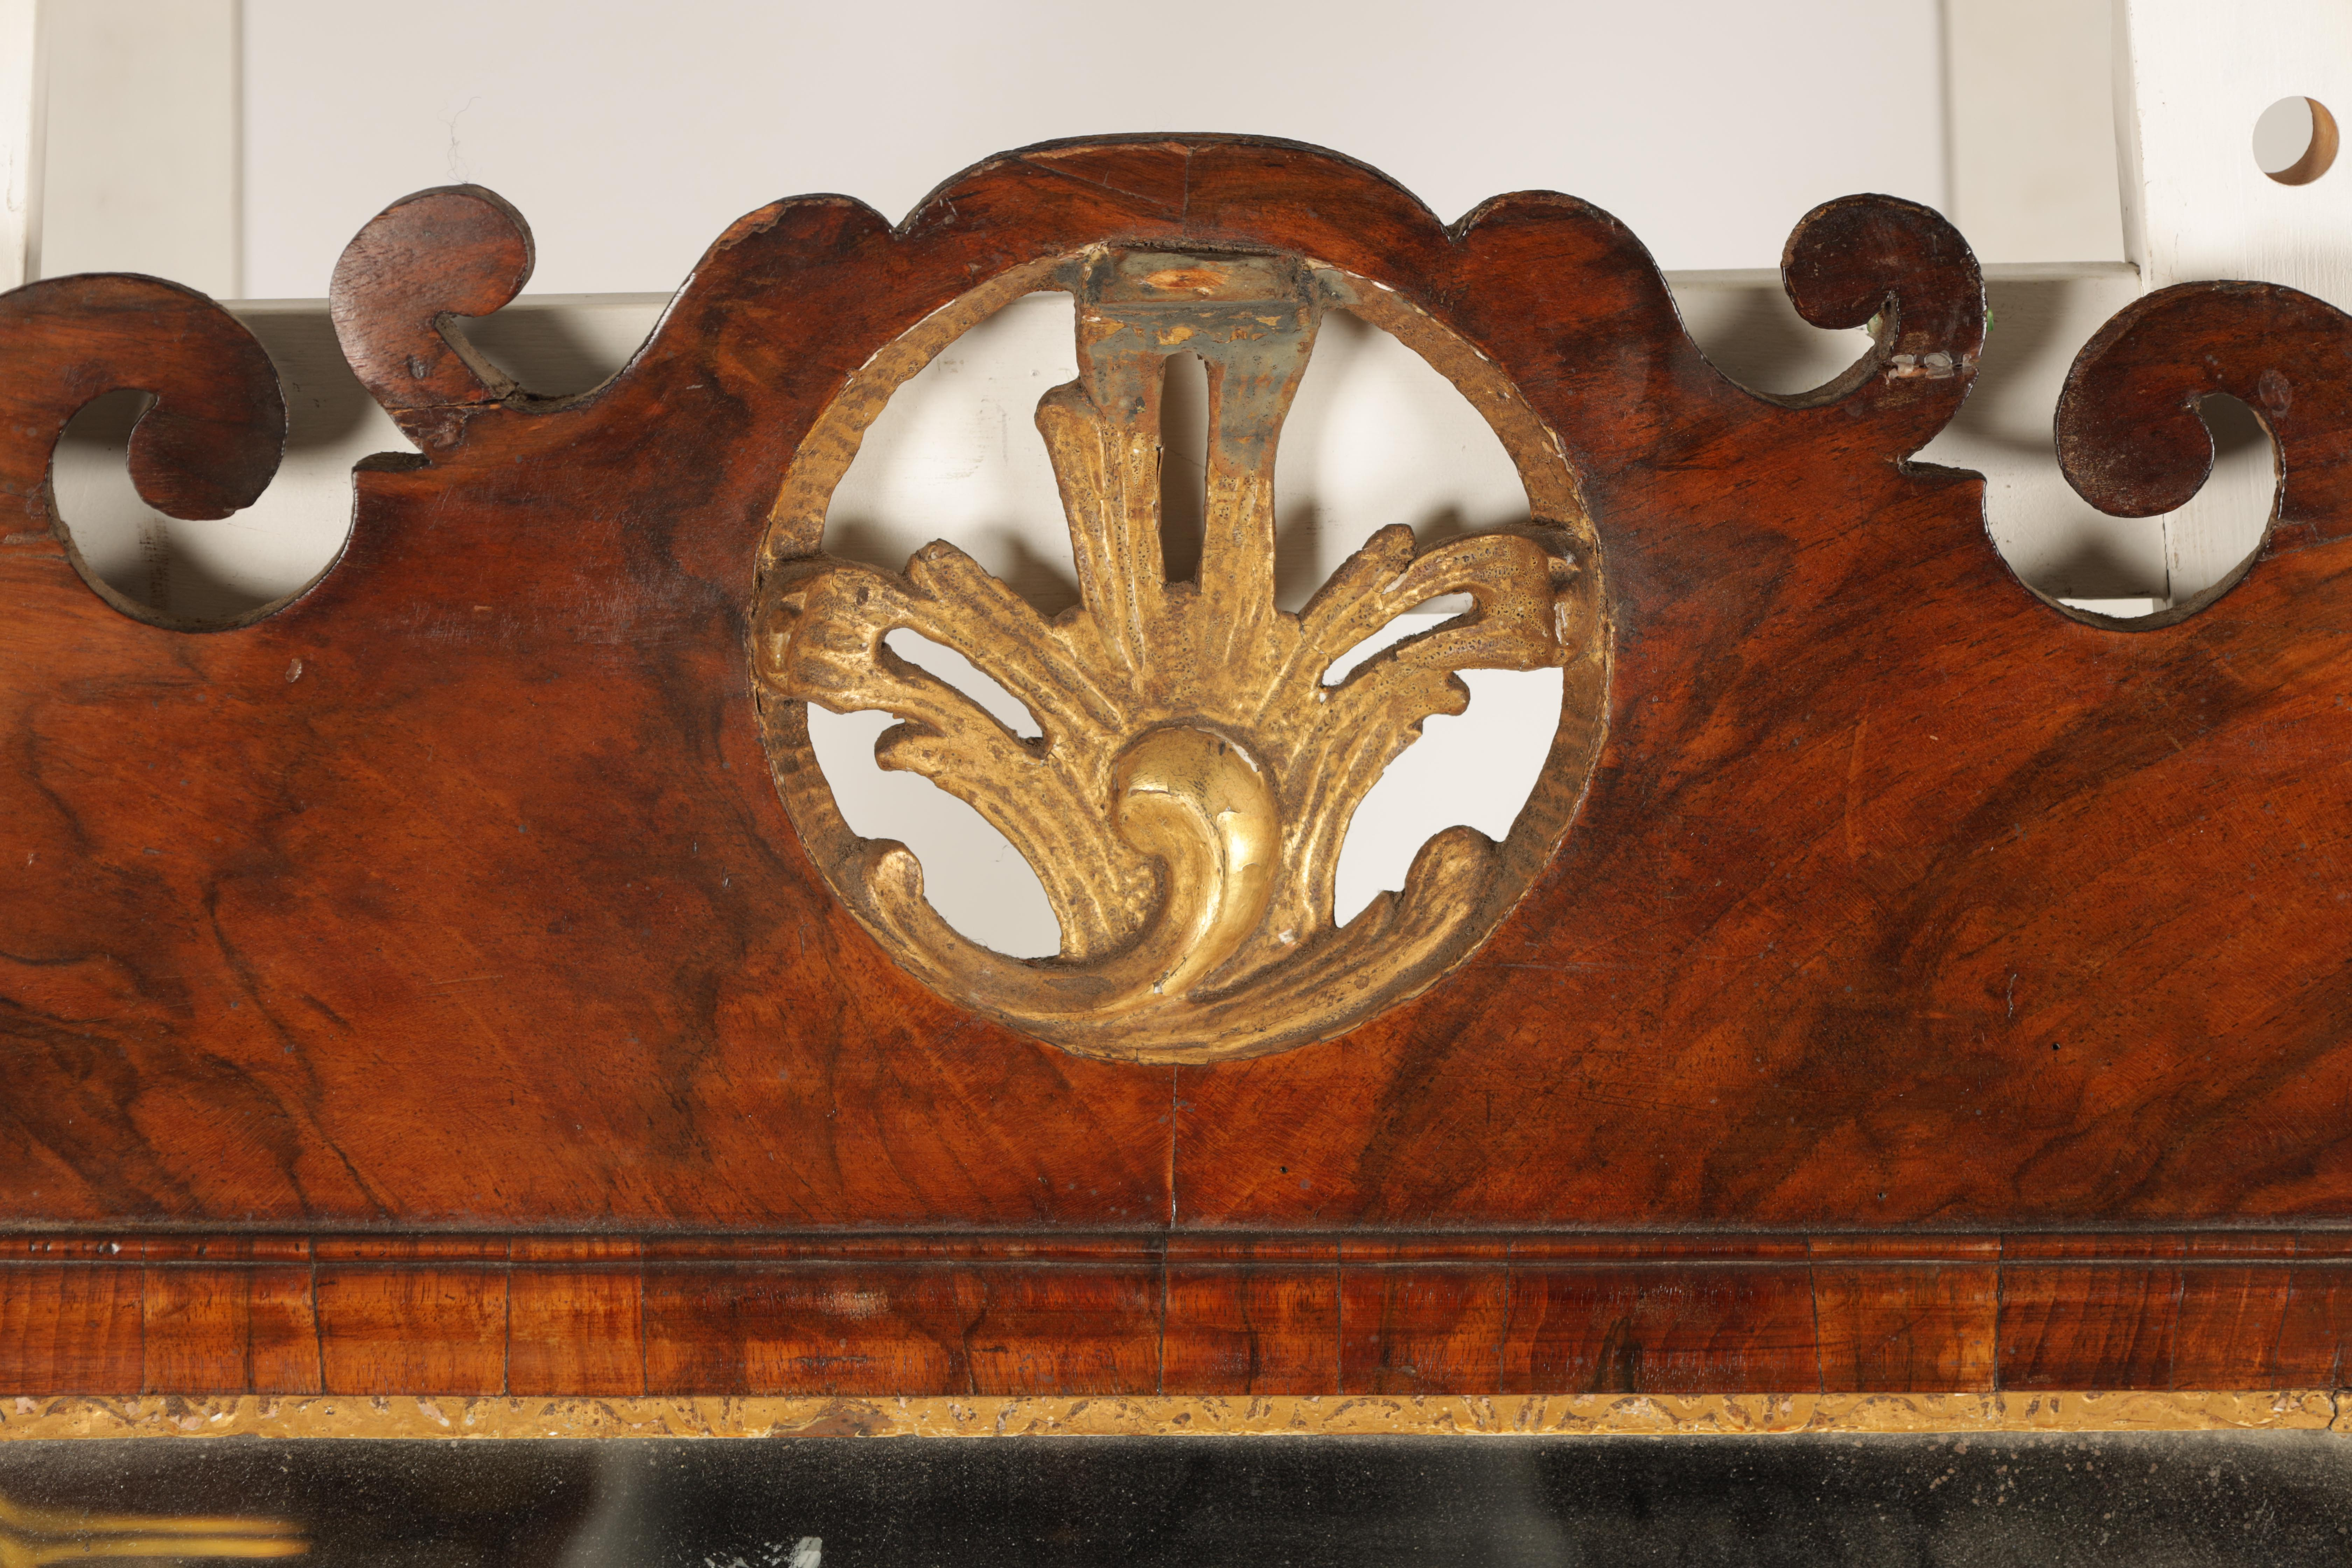 AN 18TH CENTURY WALNUT PIER MIRROR with shaped scrolled frame and gilt carved rococo pediment, the - Image 2 of 5